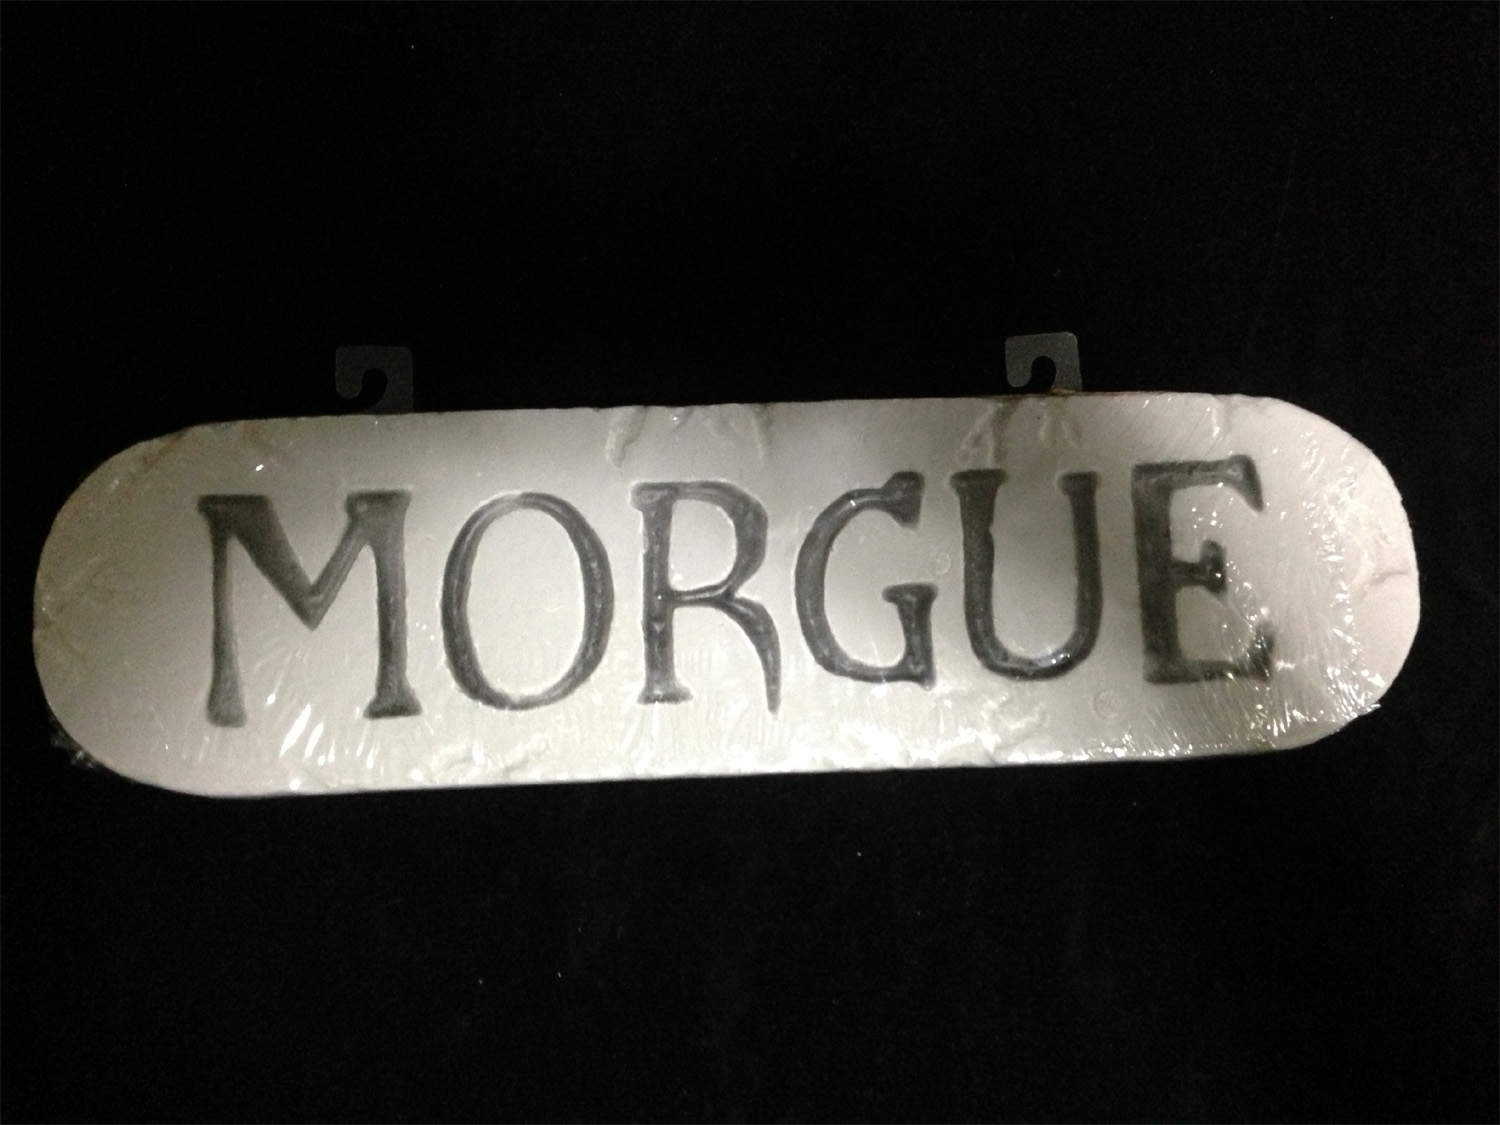 csi horror sign morgue mad scientist props halloween decorations